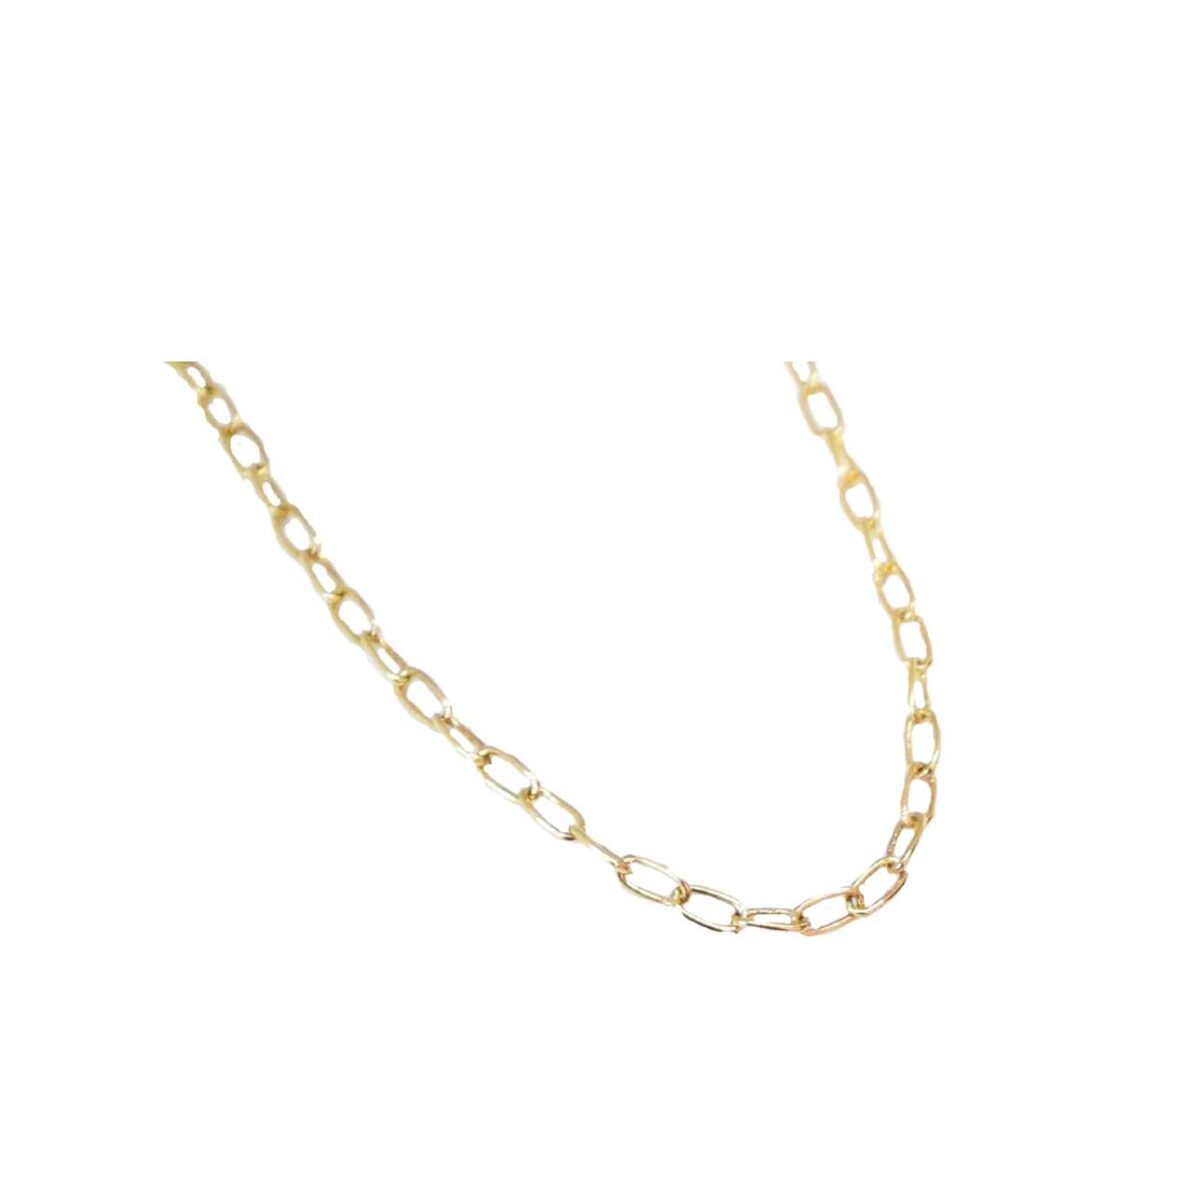 Elsa necklace II gold plated